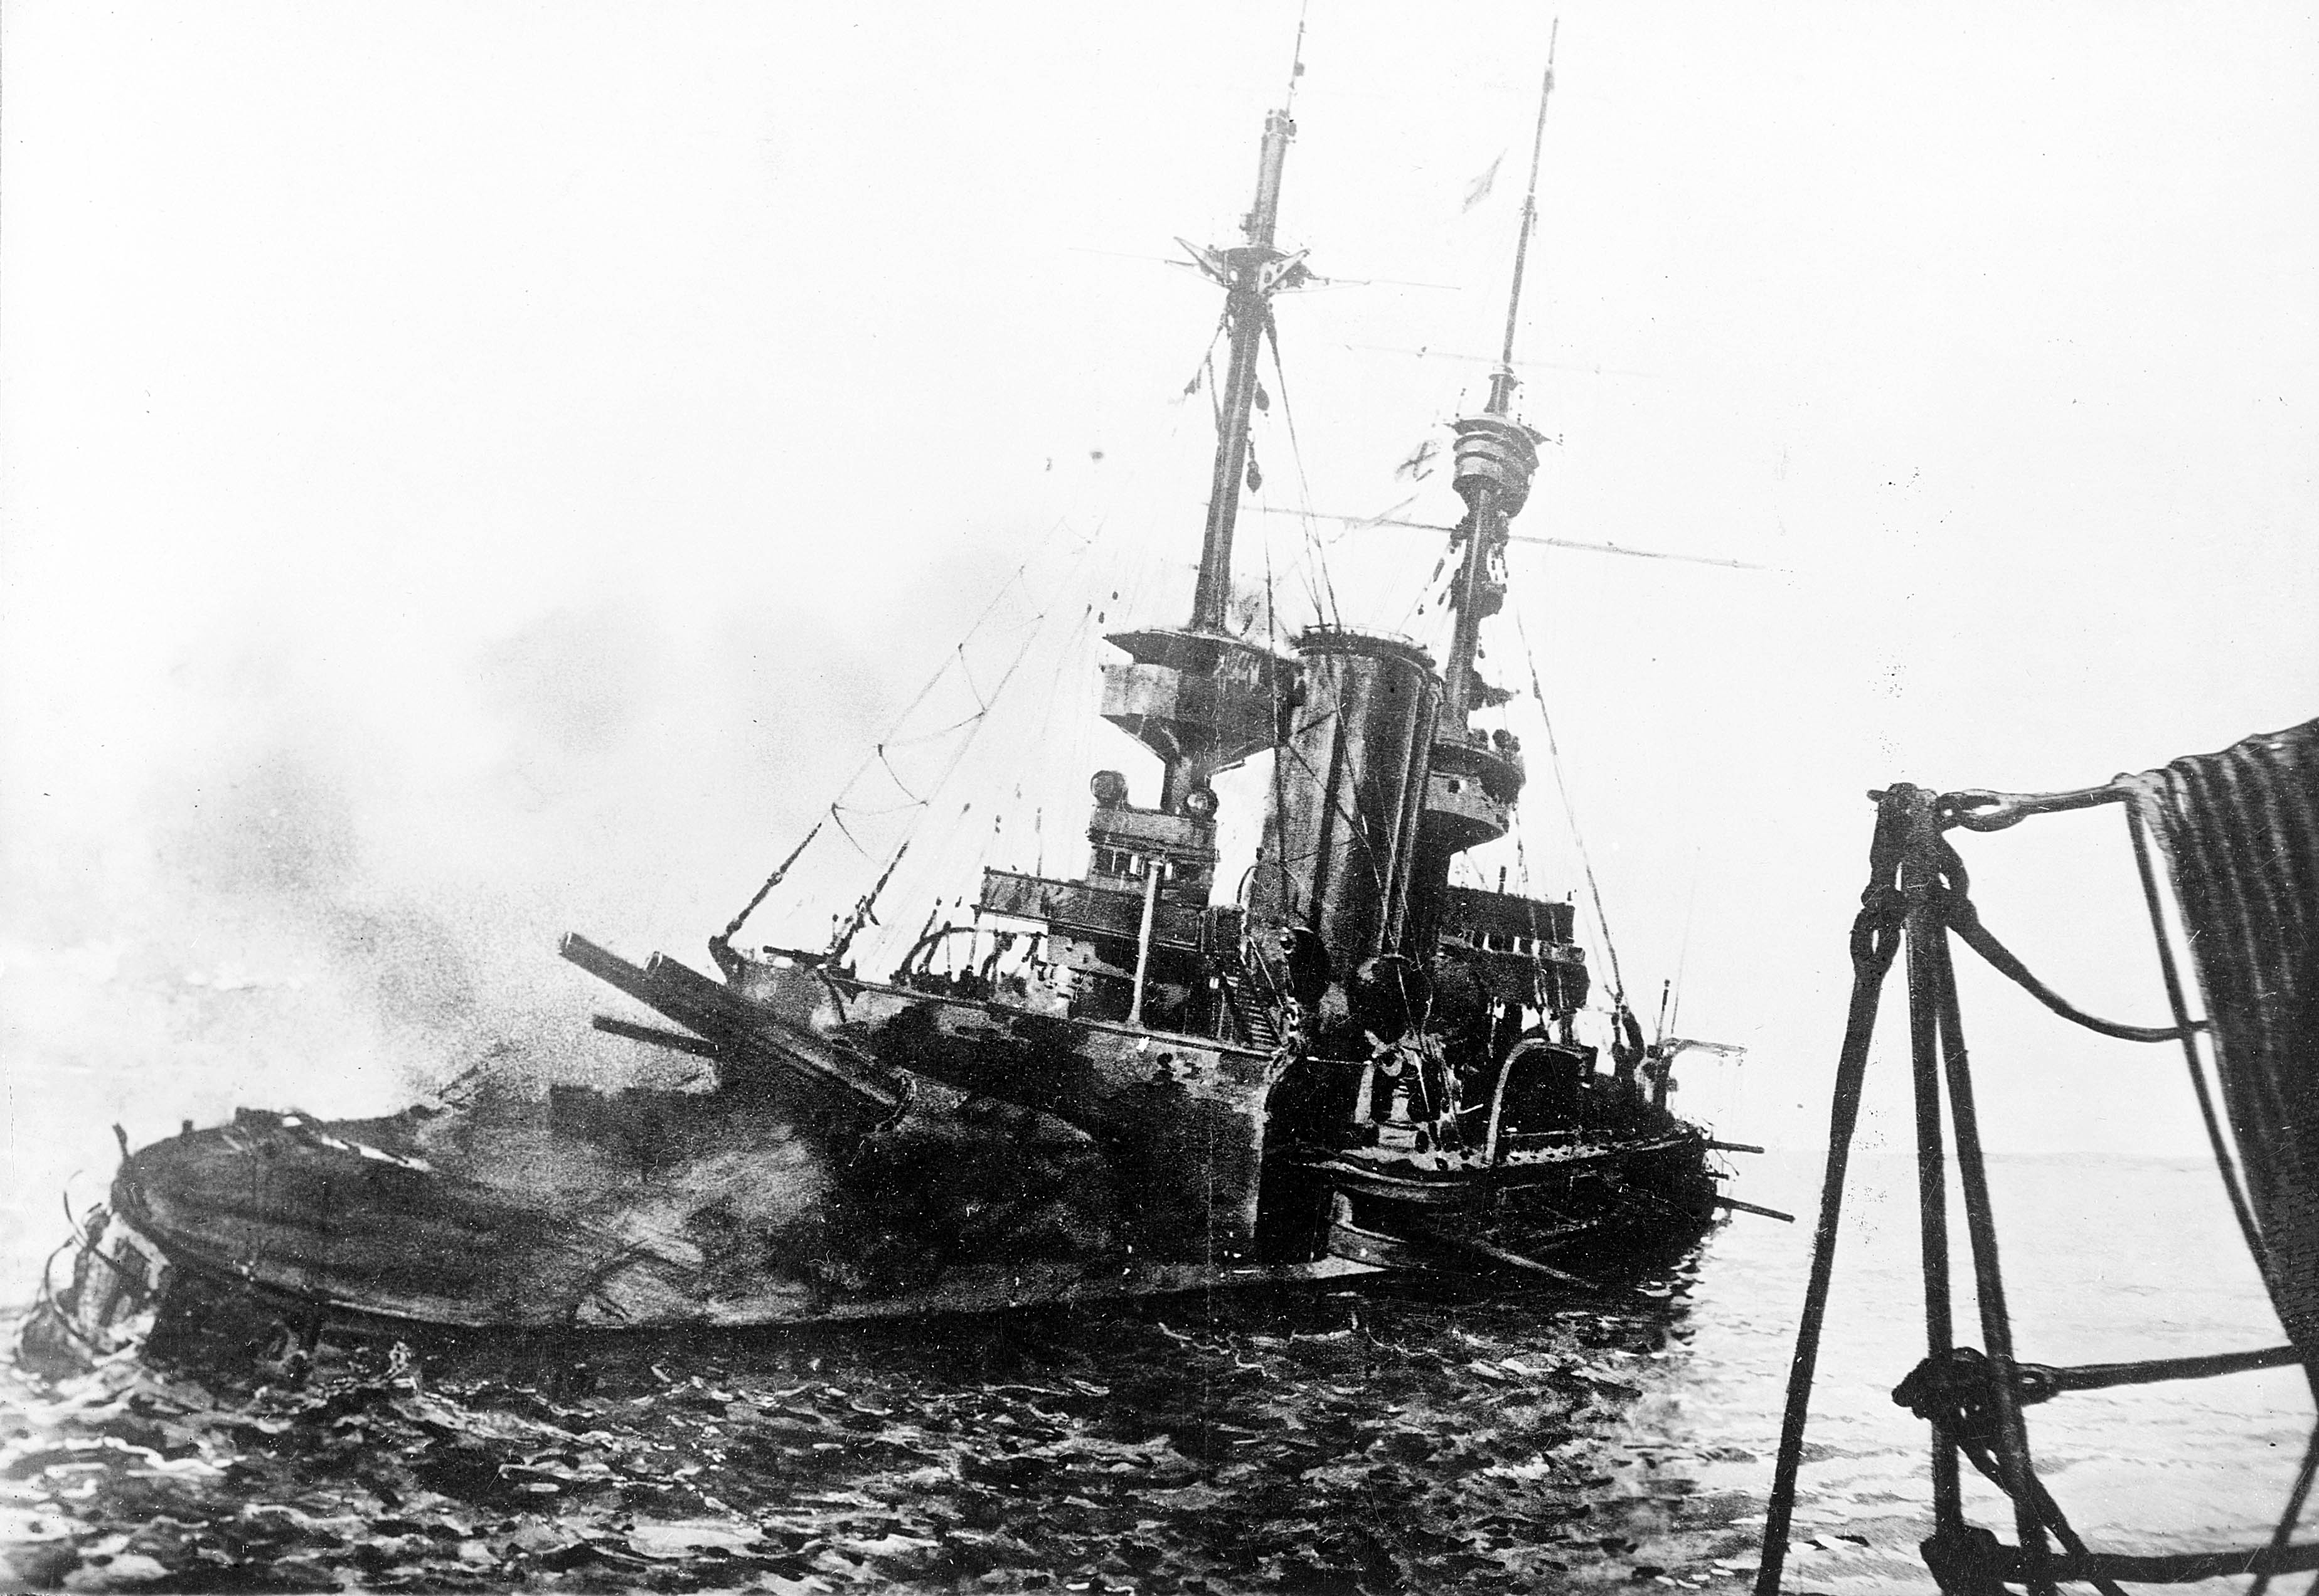 HMS_Irresistible_abandoned_18_March_1915.jpg?uselang=ru